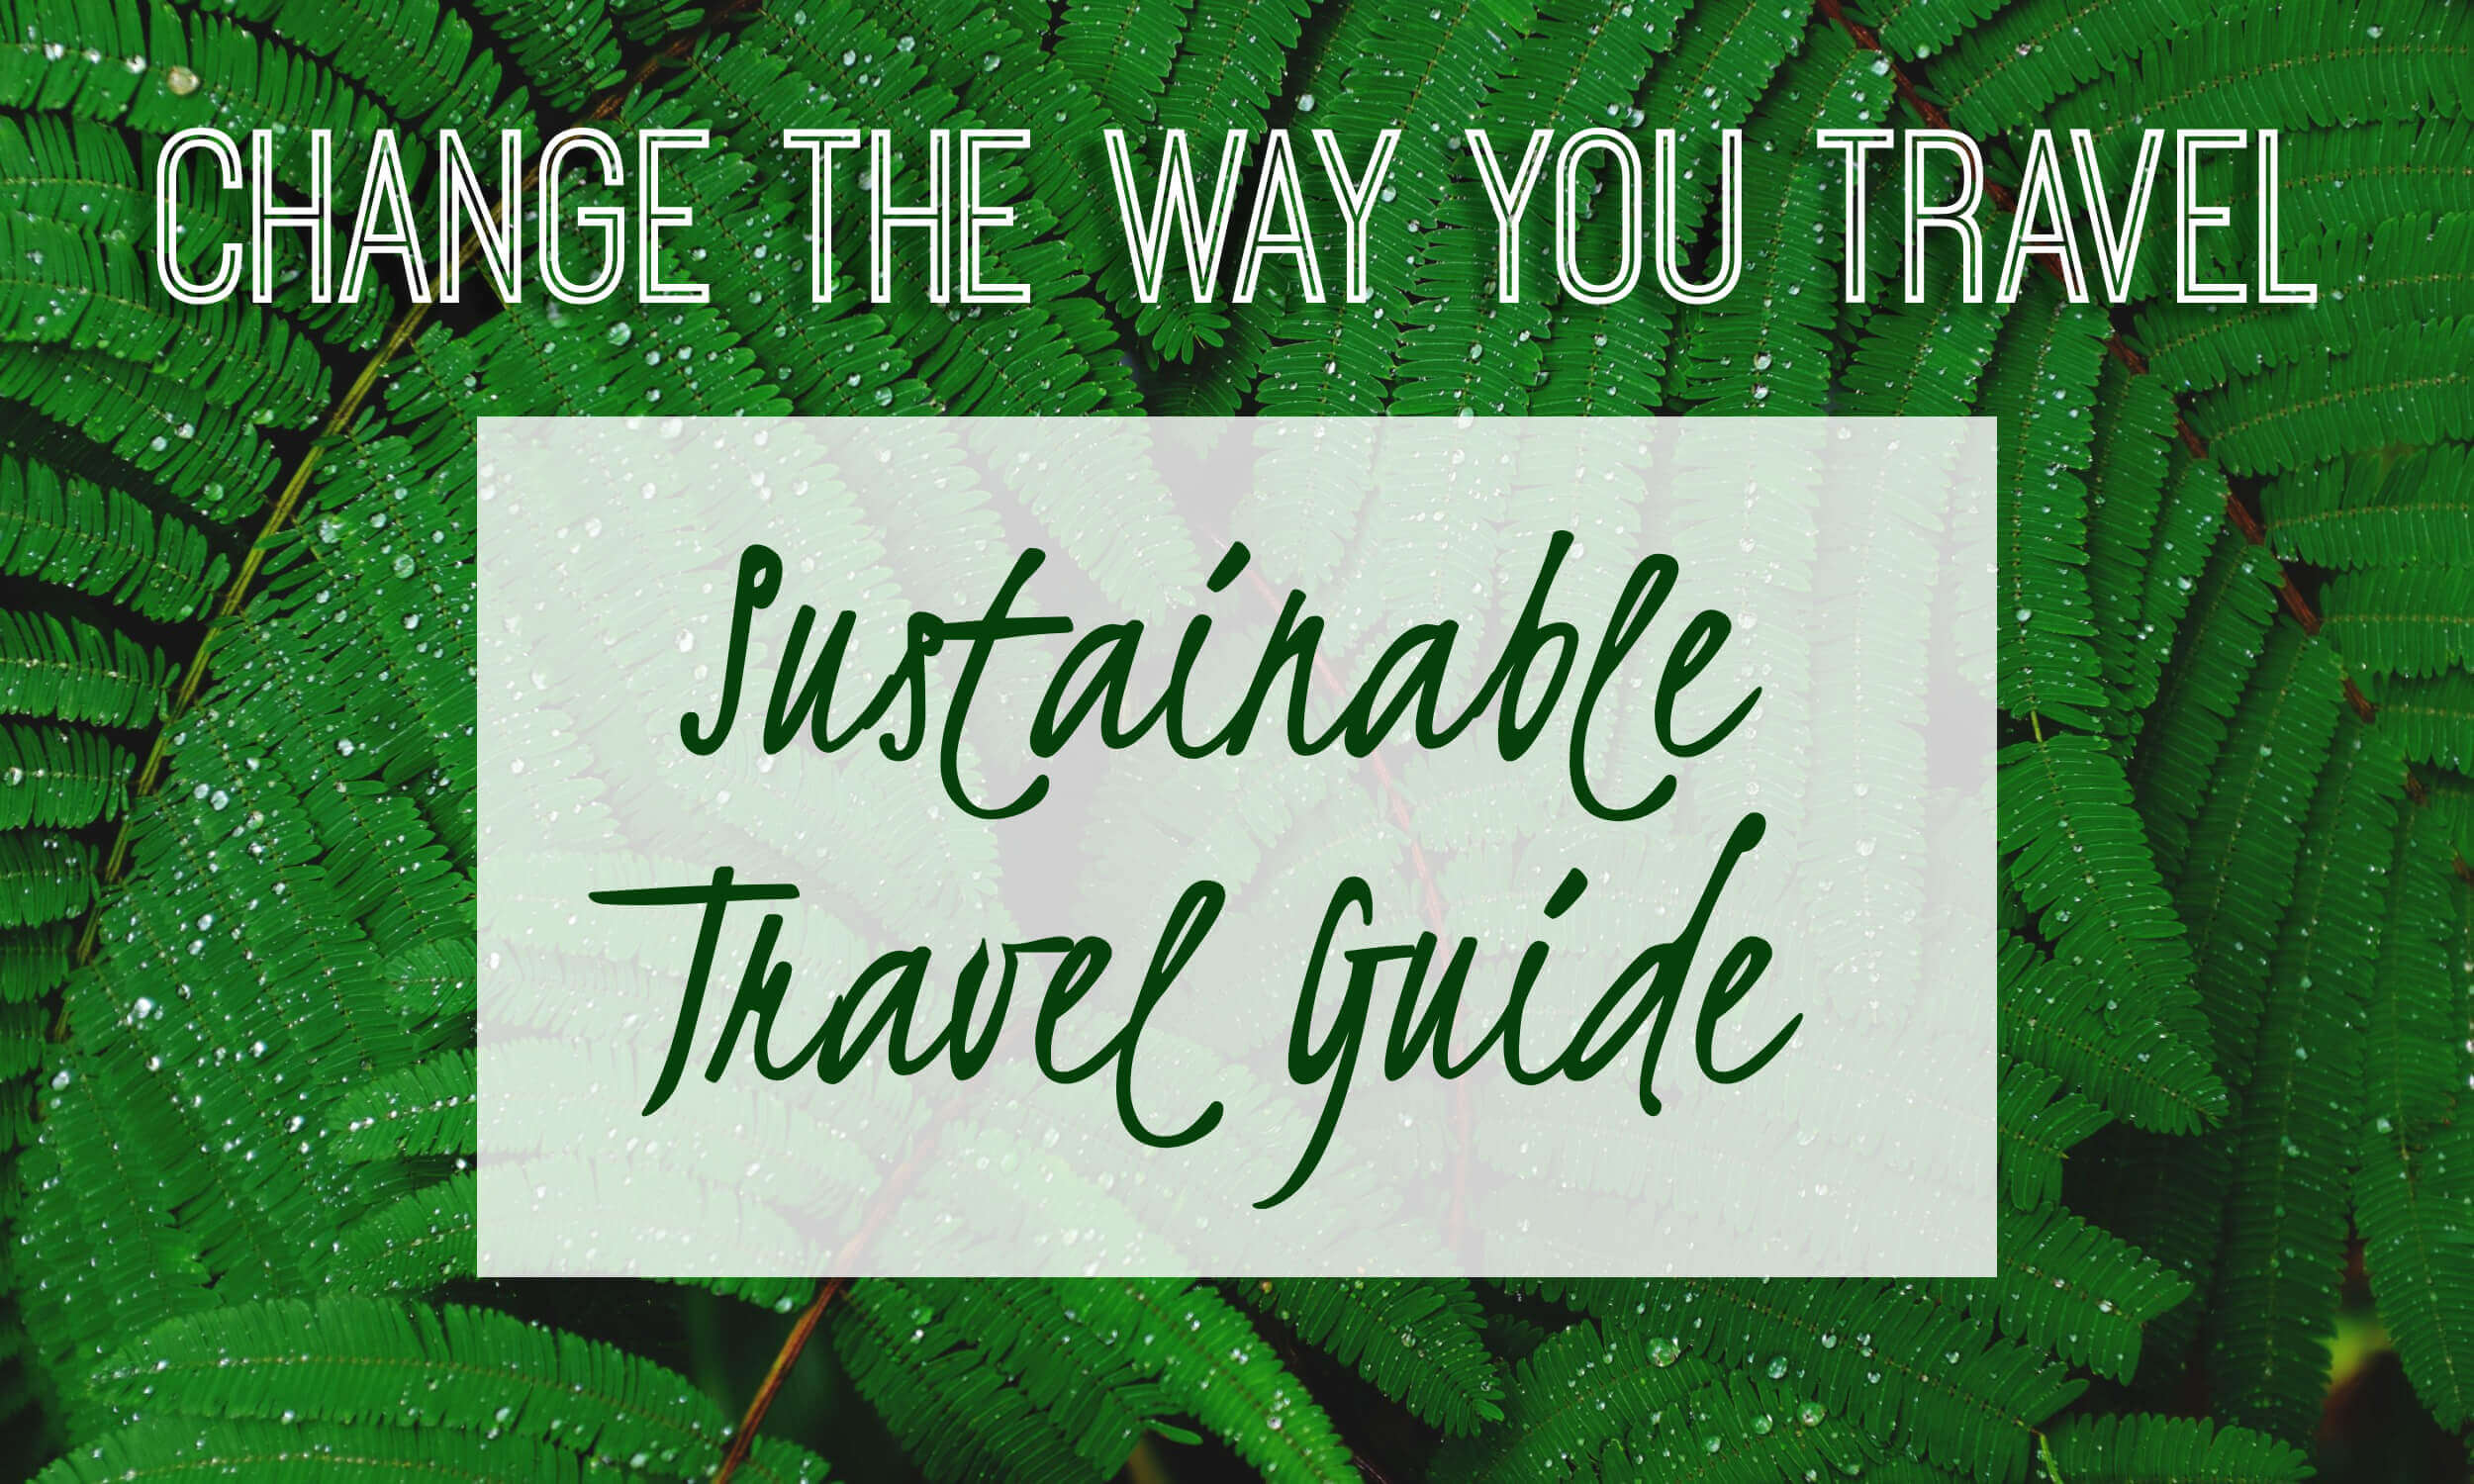 Change the way you travel by travelling more sustainably